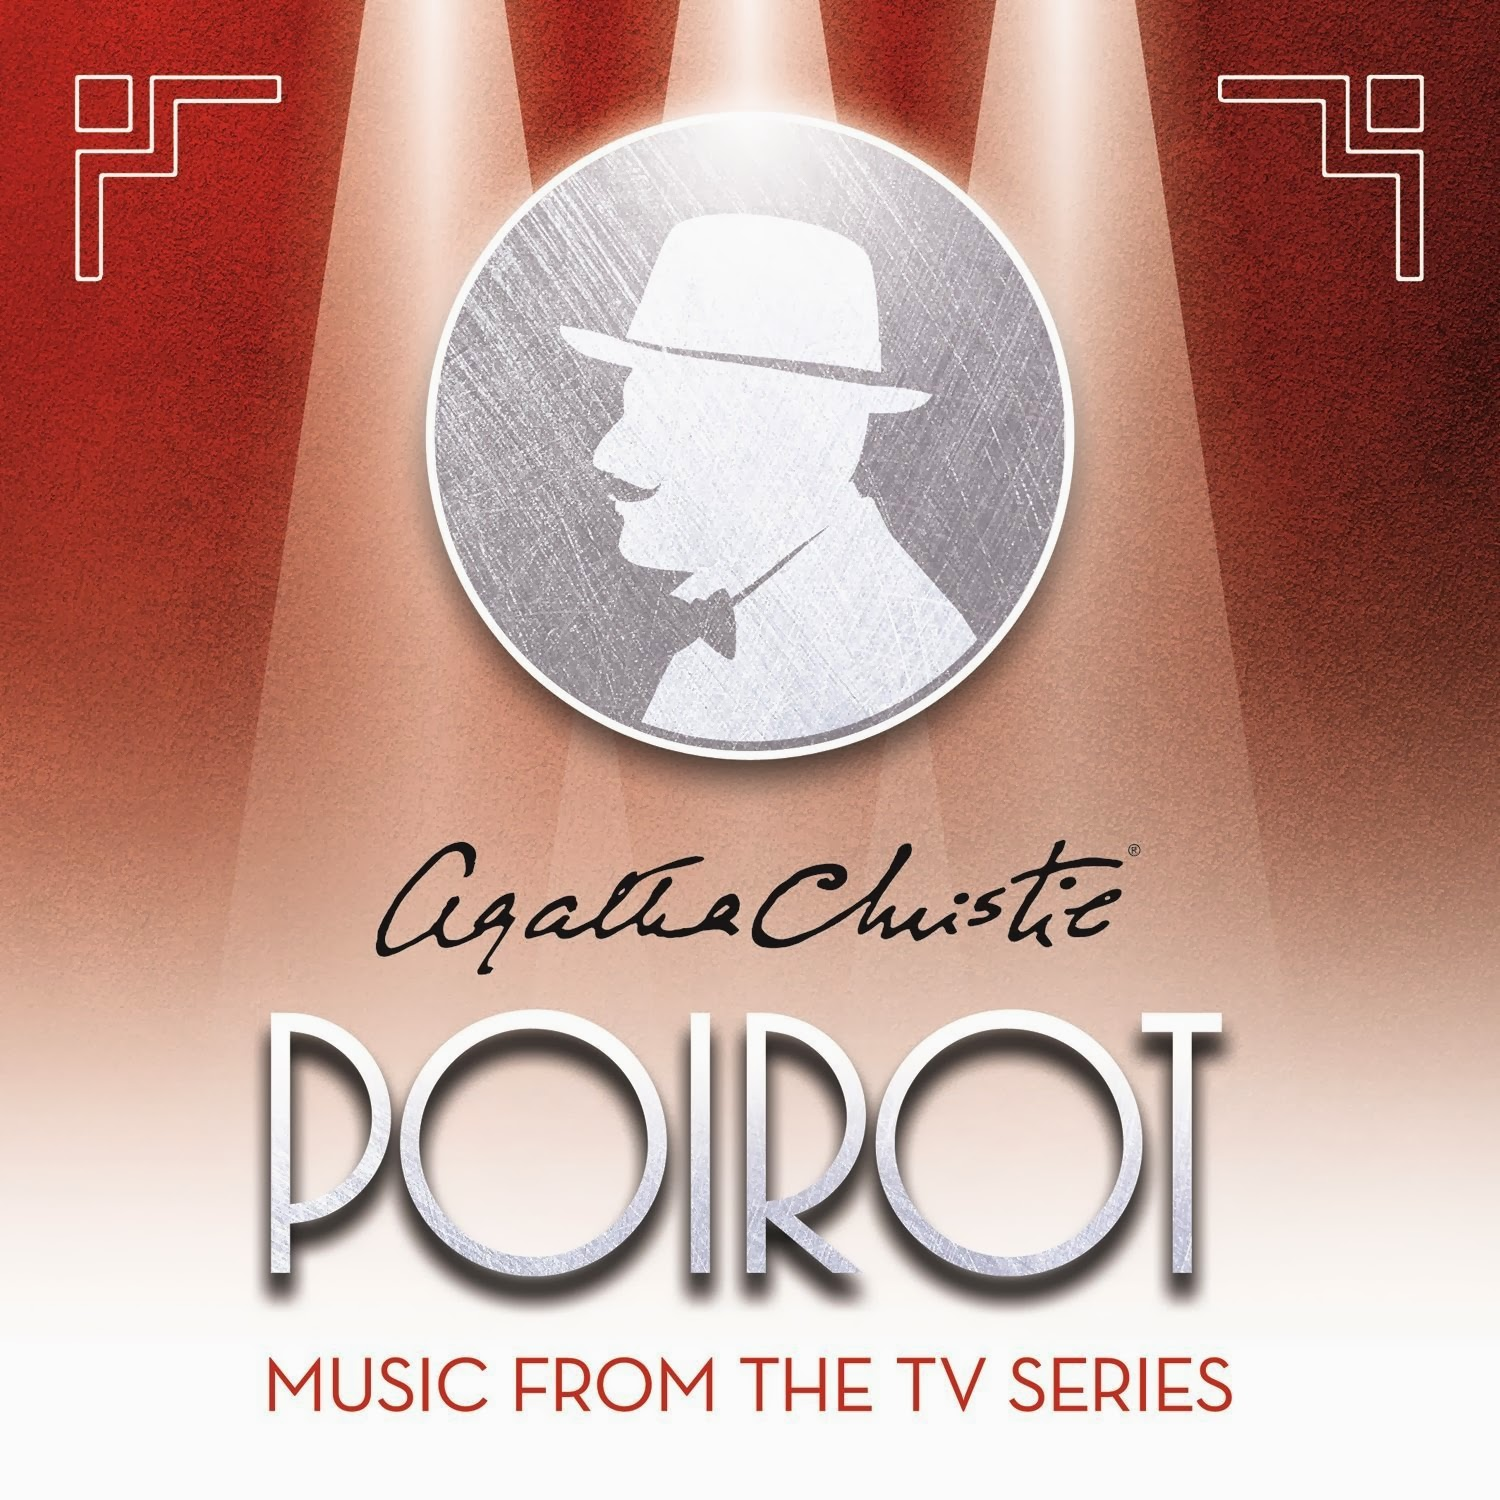 Blog posts erogonintelligentpnd hercule poirot download series fandeluxe Images